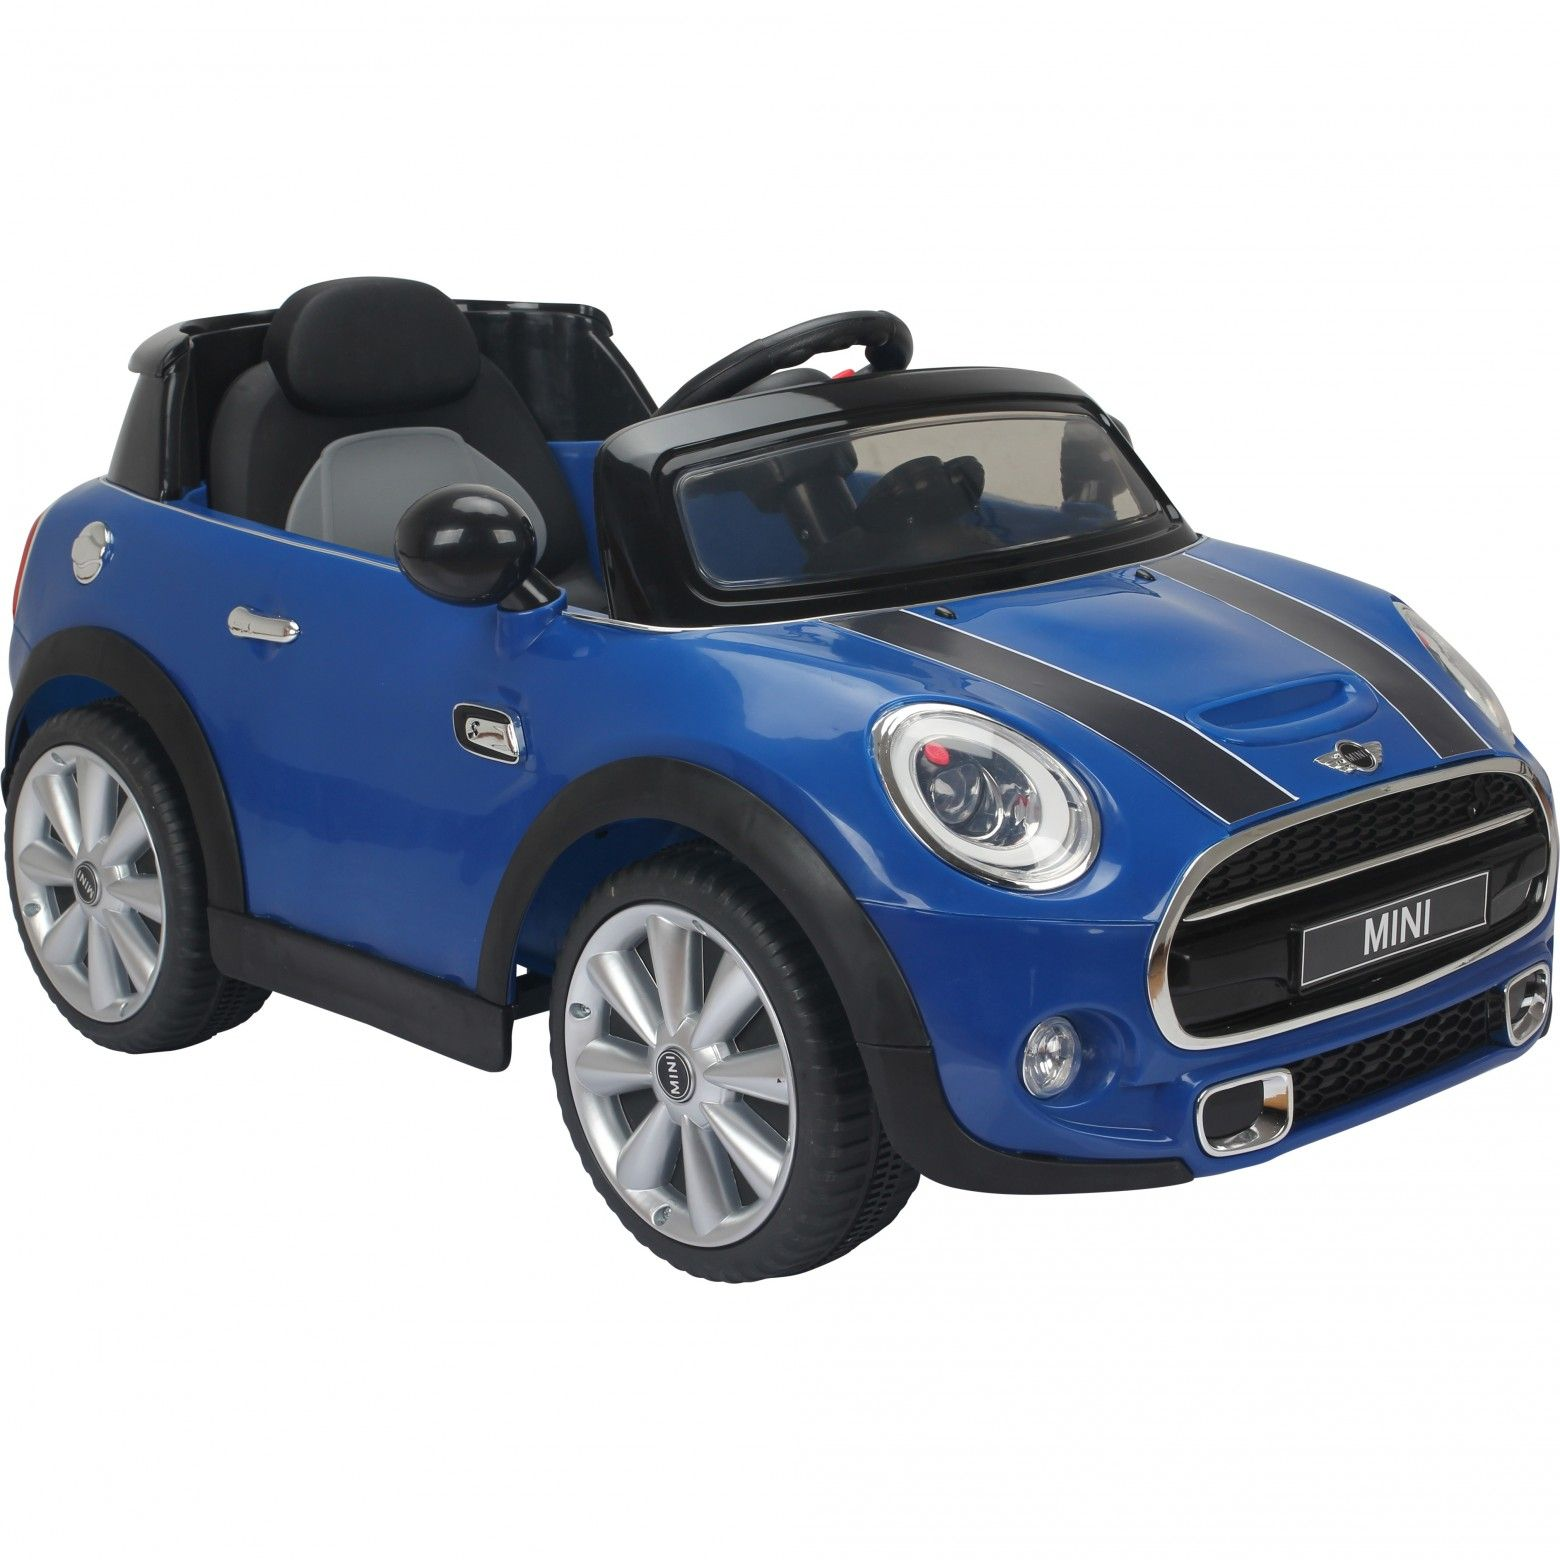 licensed mini cooper s childs ride on car blue at outdoor toys the uks leading outdoor toy specialist